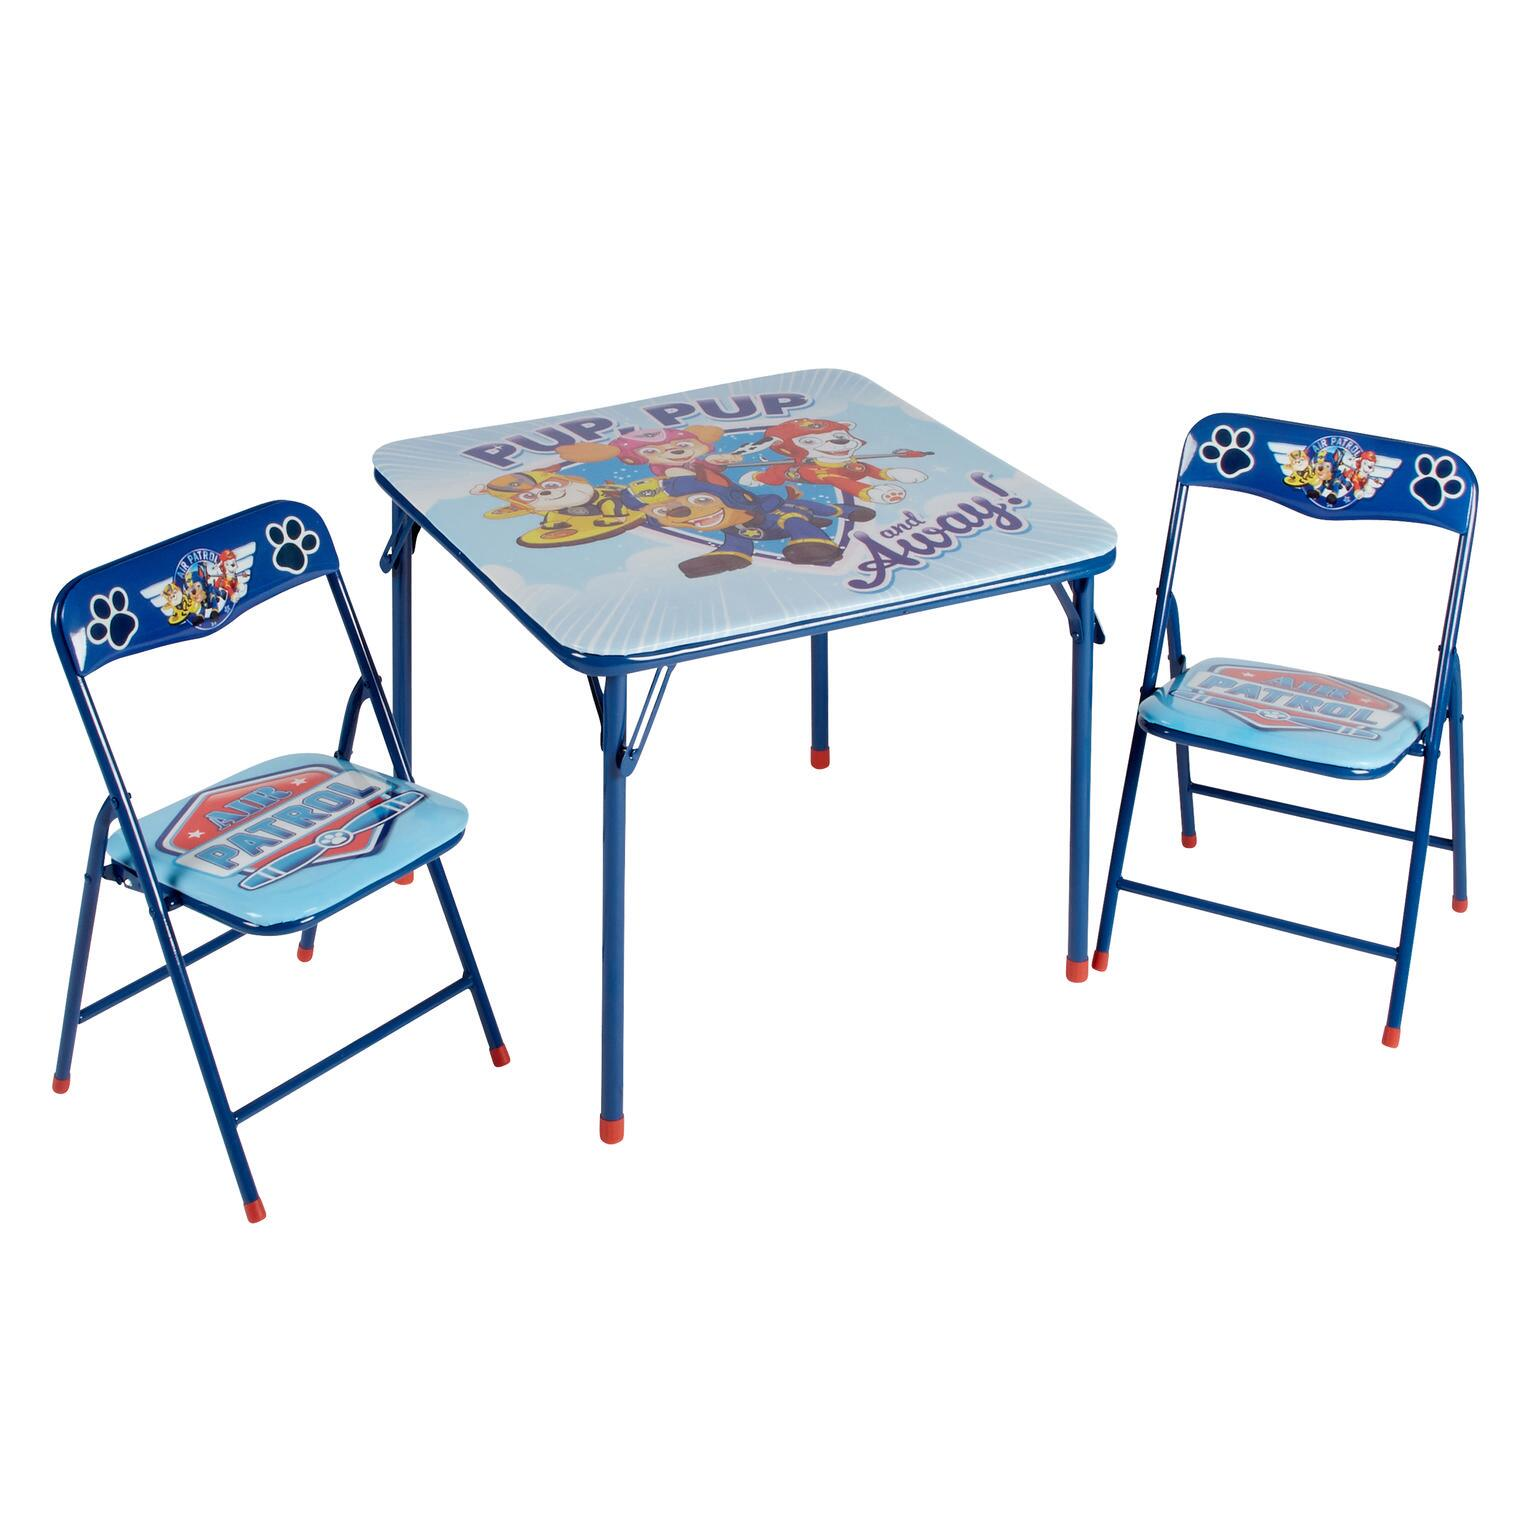 Paw Patrol Children S Folding Table And Chairs Set 3 Piece